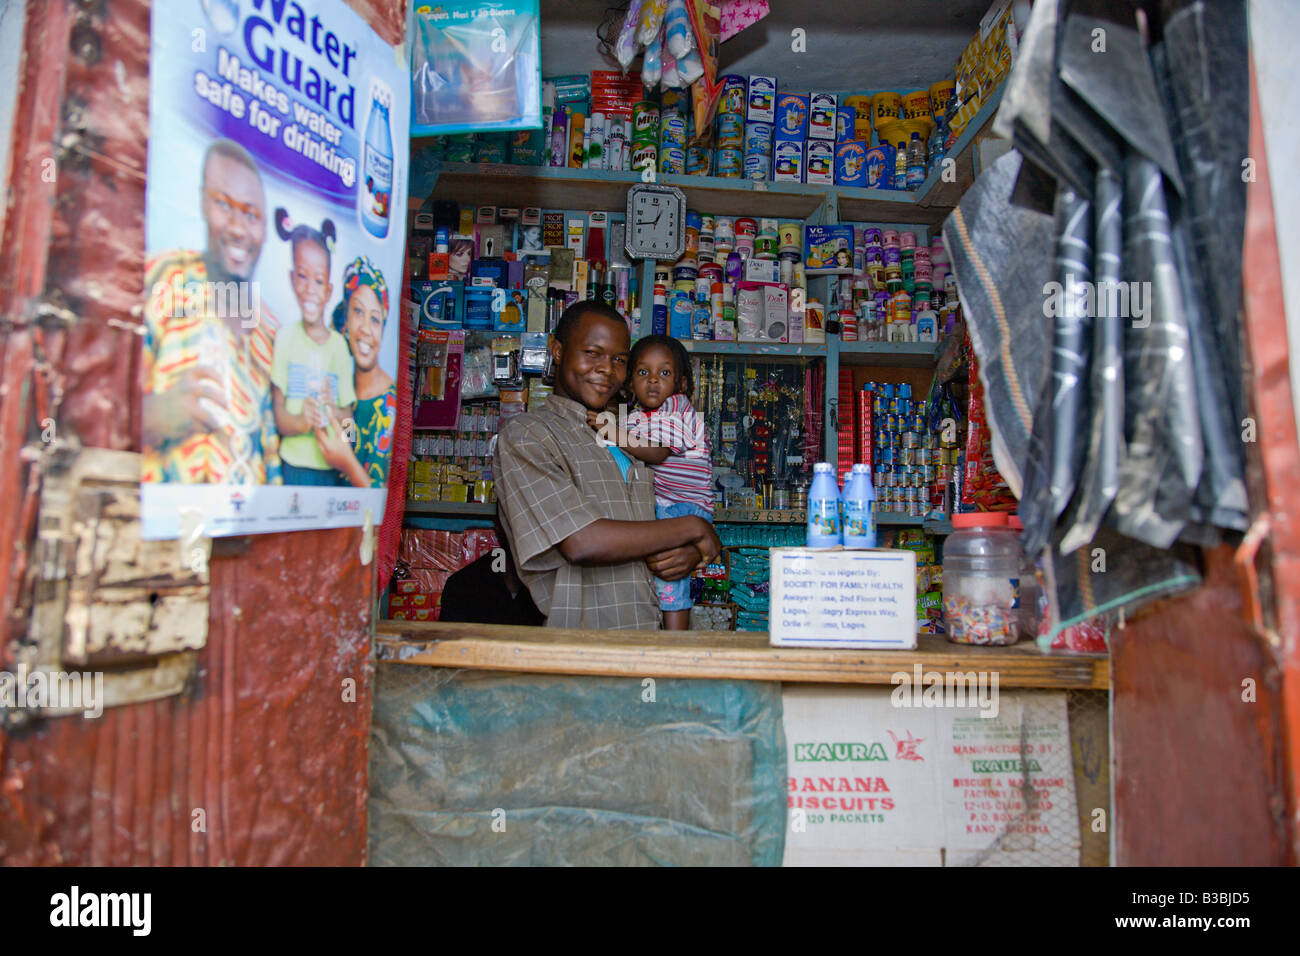 A shop in the Gyadi Gyadi area of Kano Nigeria prominently displays a Waterguard advertisement on the door - Stock Image